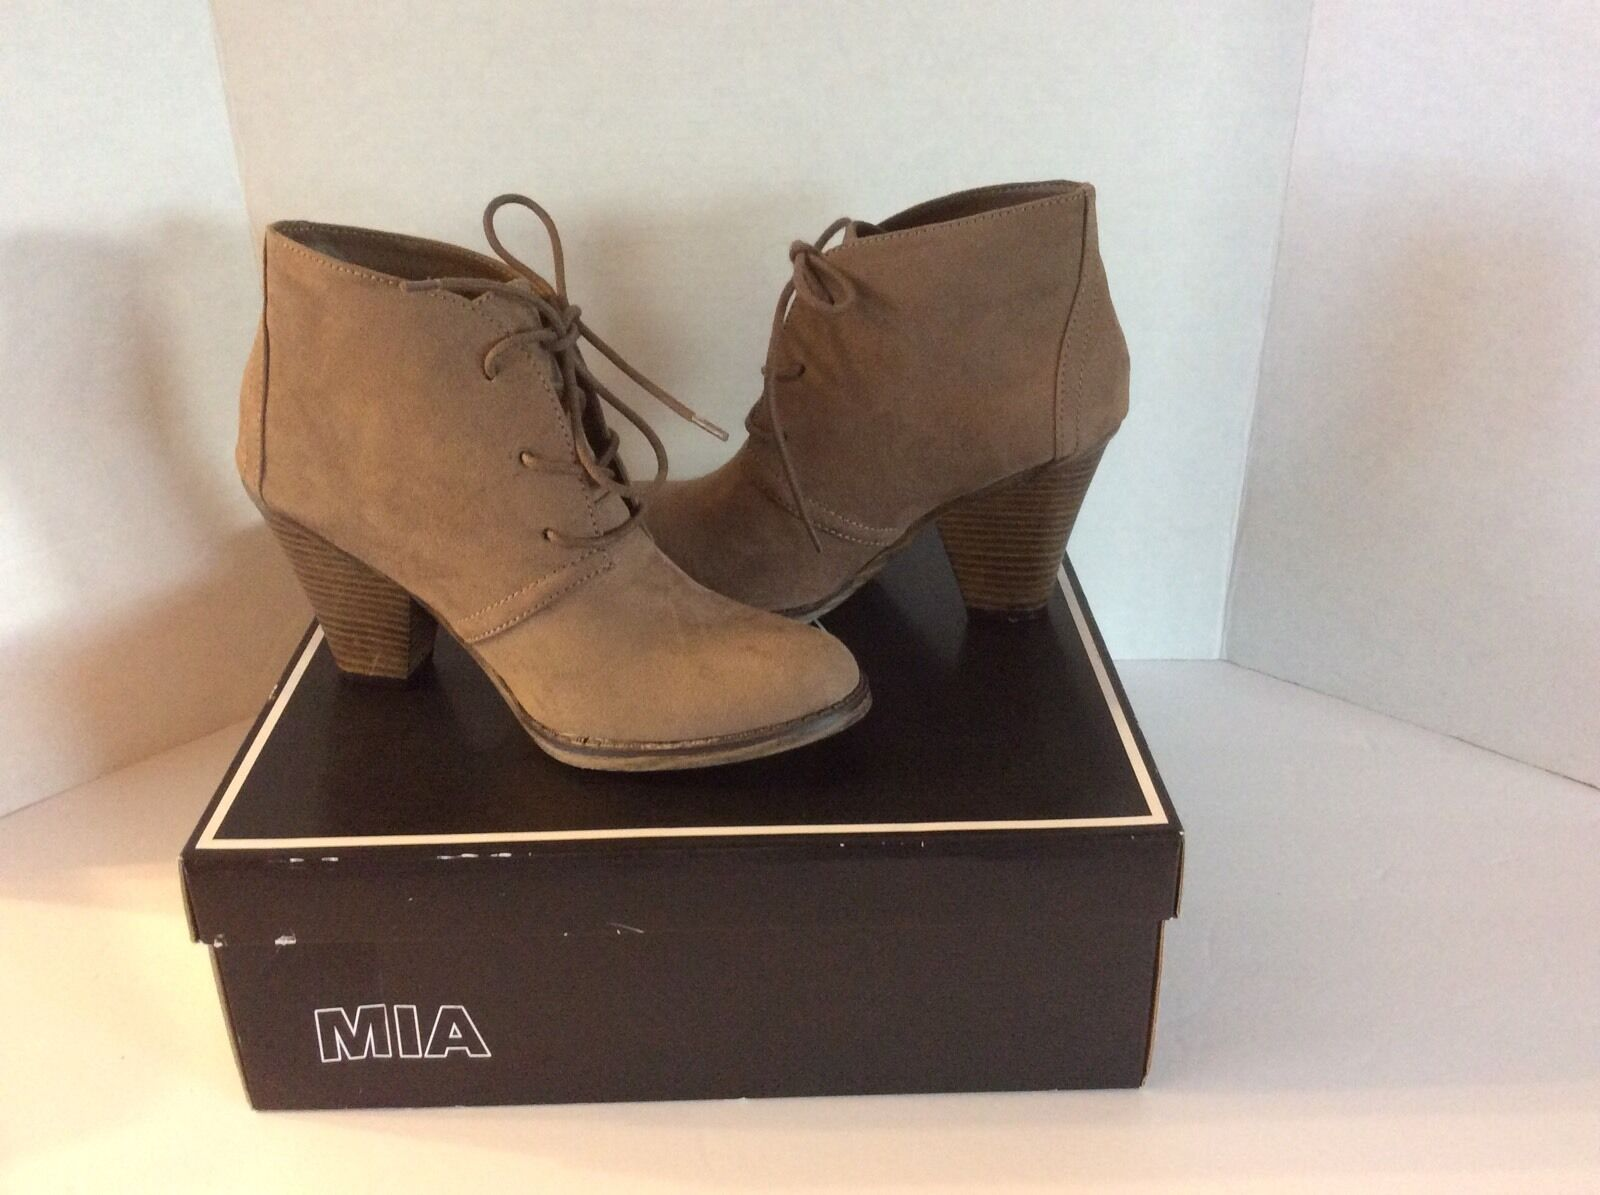 Mia Shawna Women Taupe Nova Suede Ankle Lace Up Boots Size 6.5 M NIB